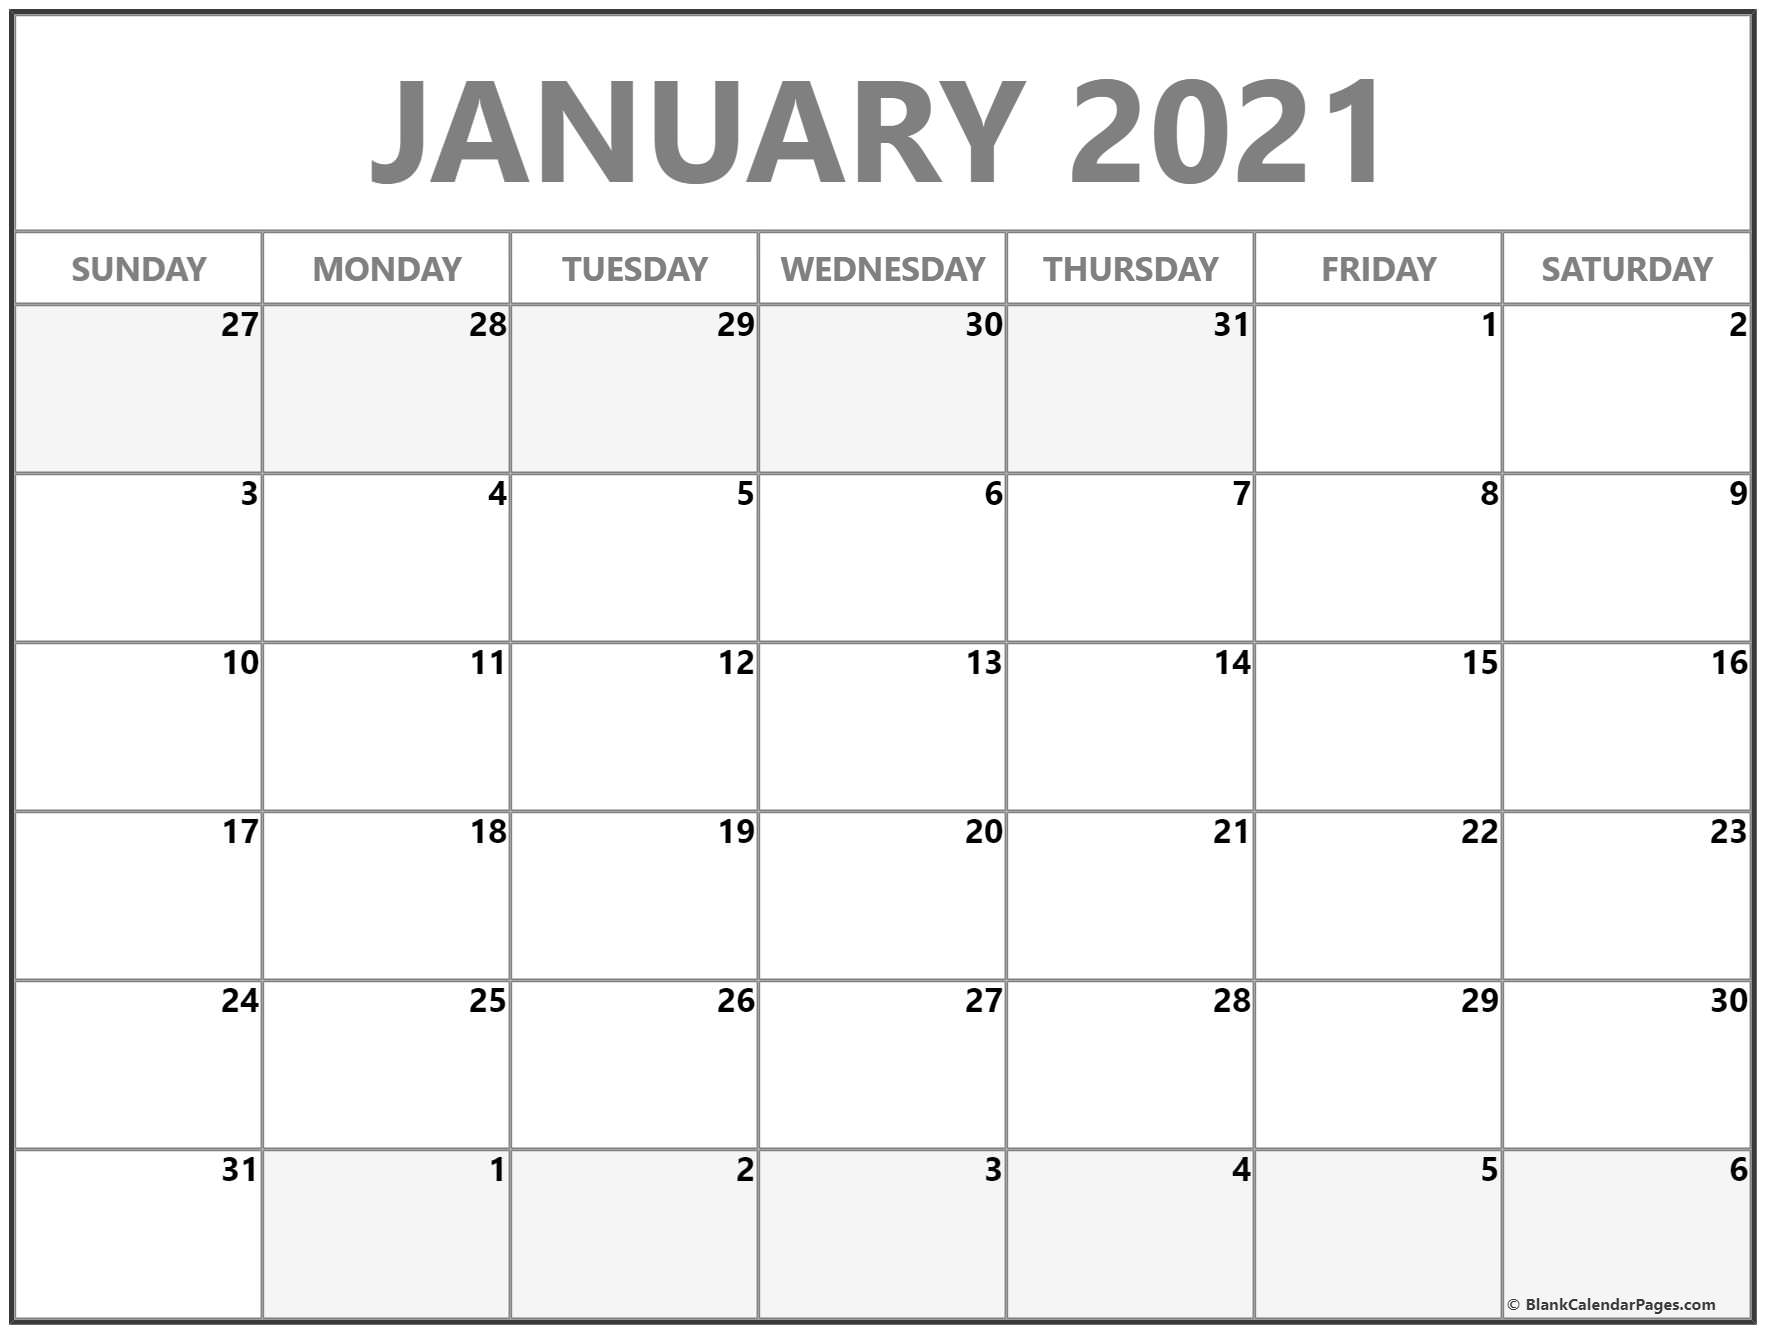 January 2021 Blank Calendar Collection.